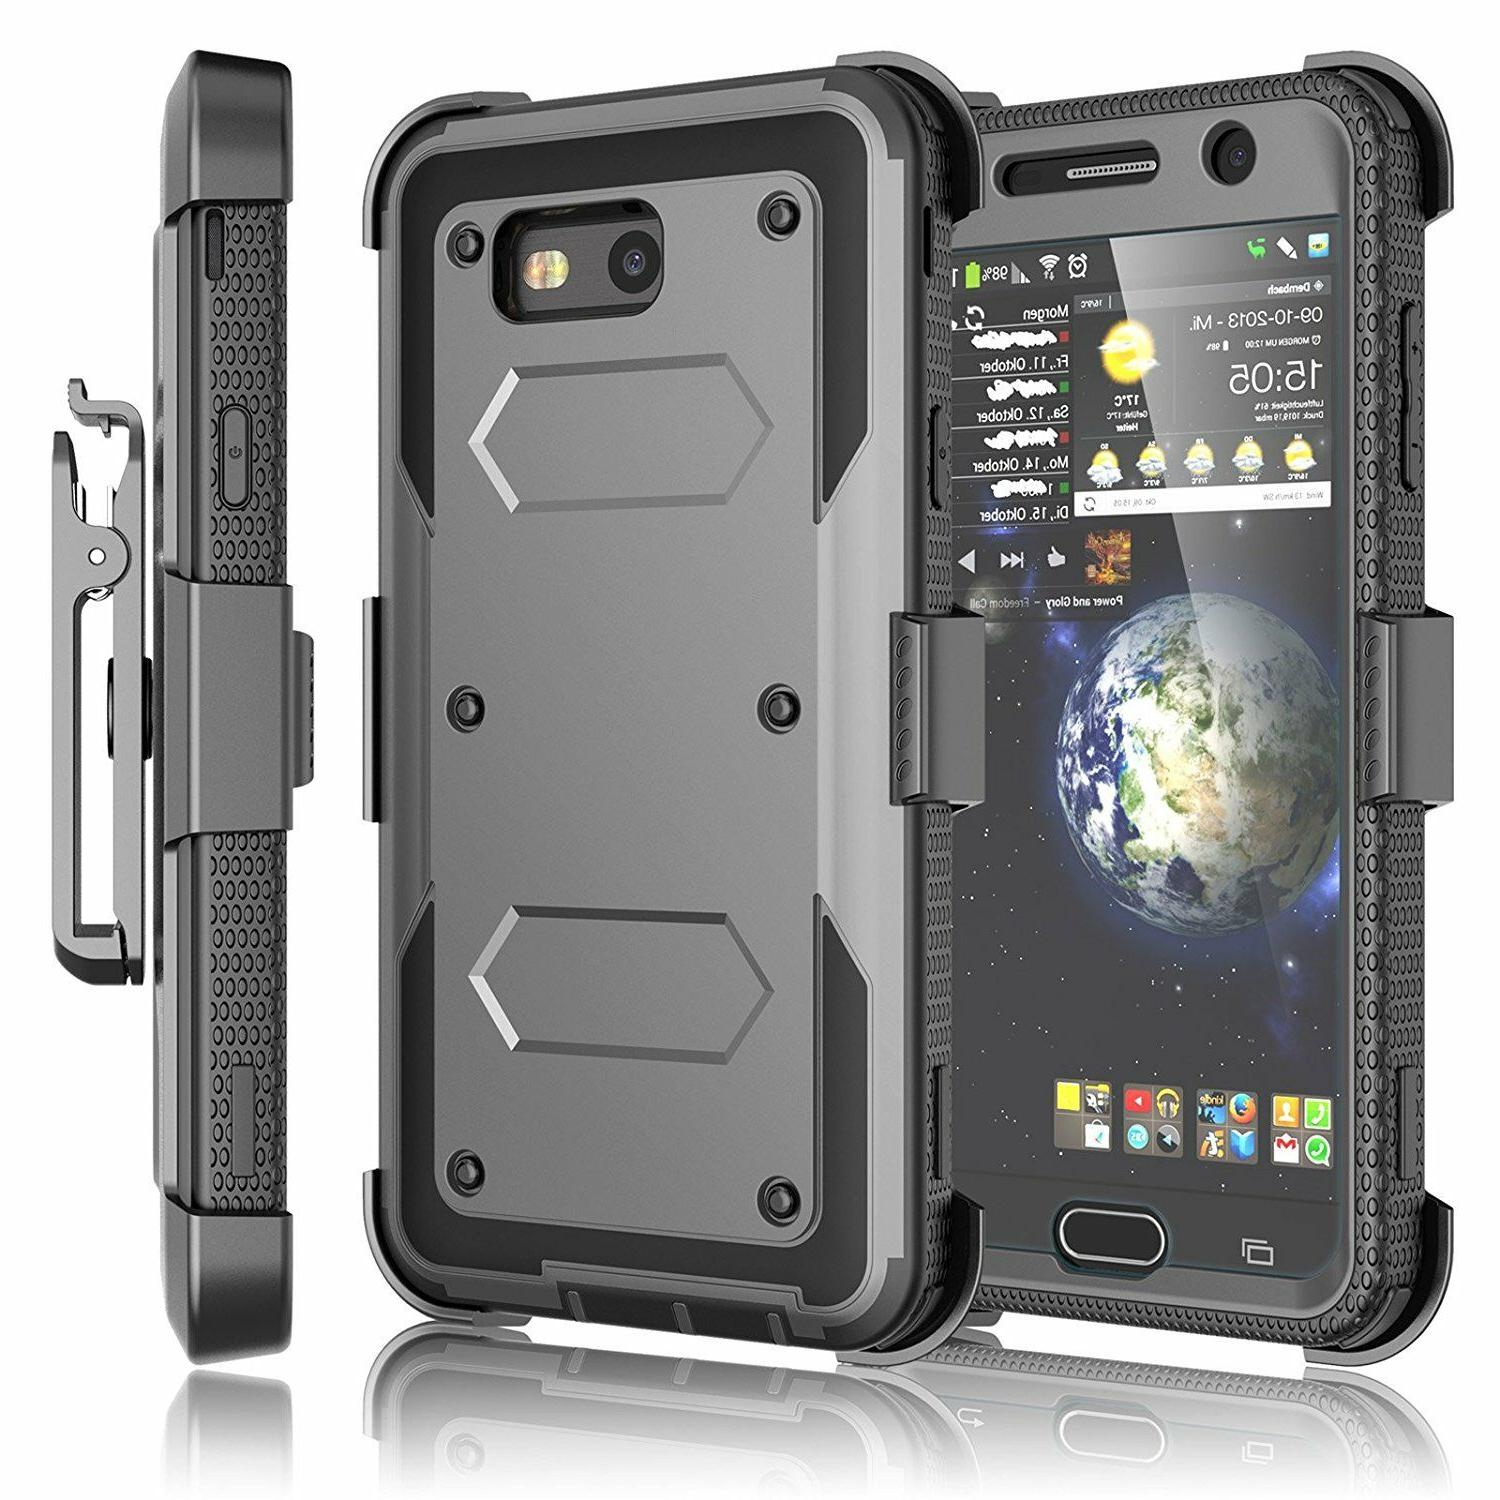 Cell Phone Shockproof Case With Clip + Screen Protector